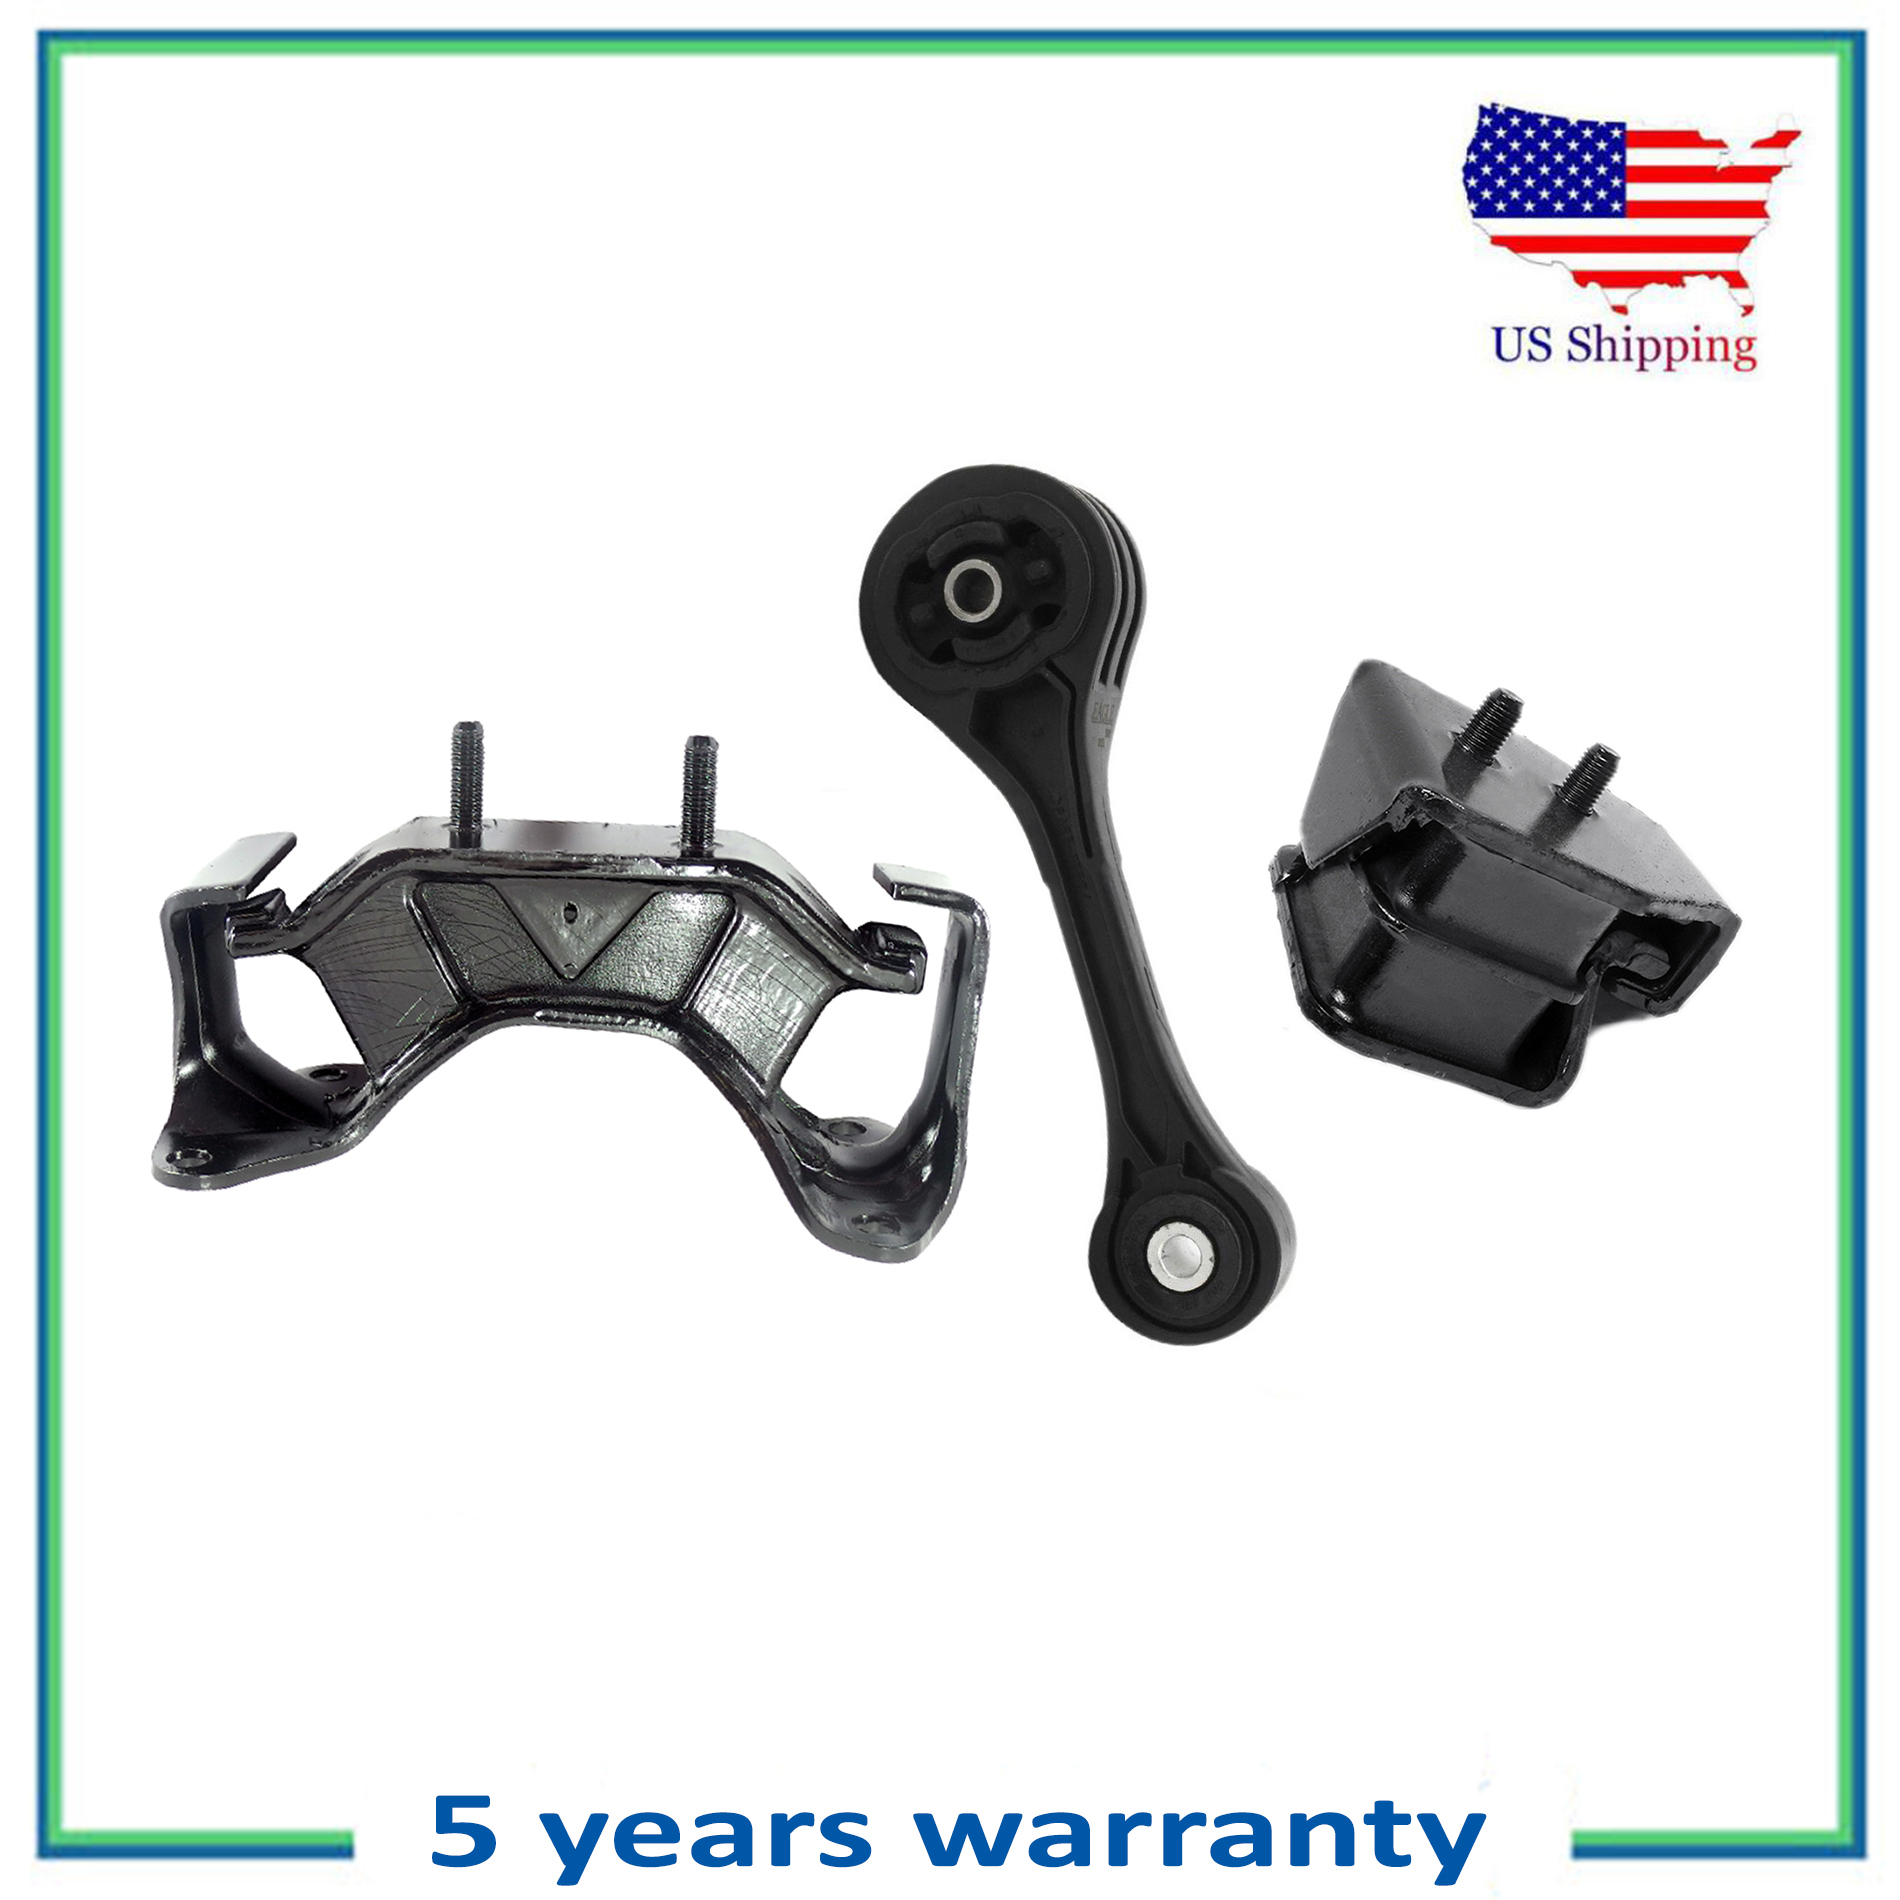 2.5L Forester 2.0L Front Right Engine Motor Mount 2012-2015 for Subaru Impreza